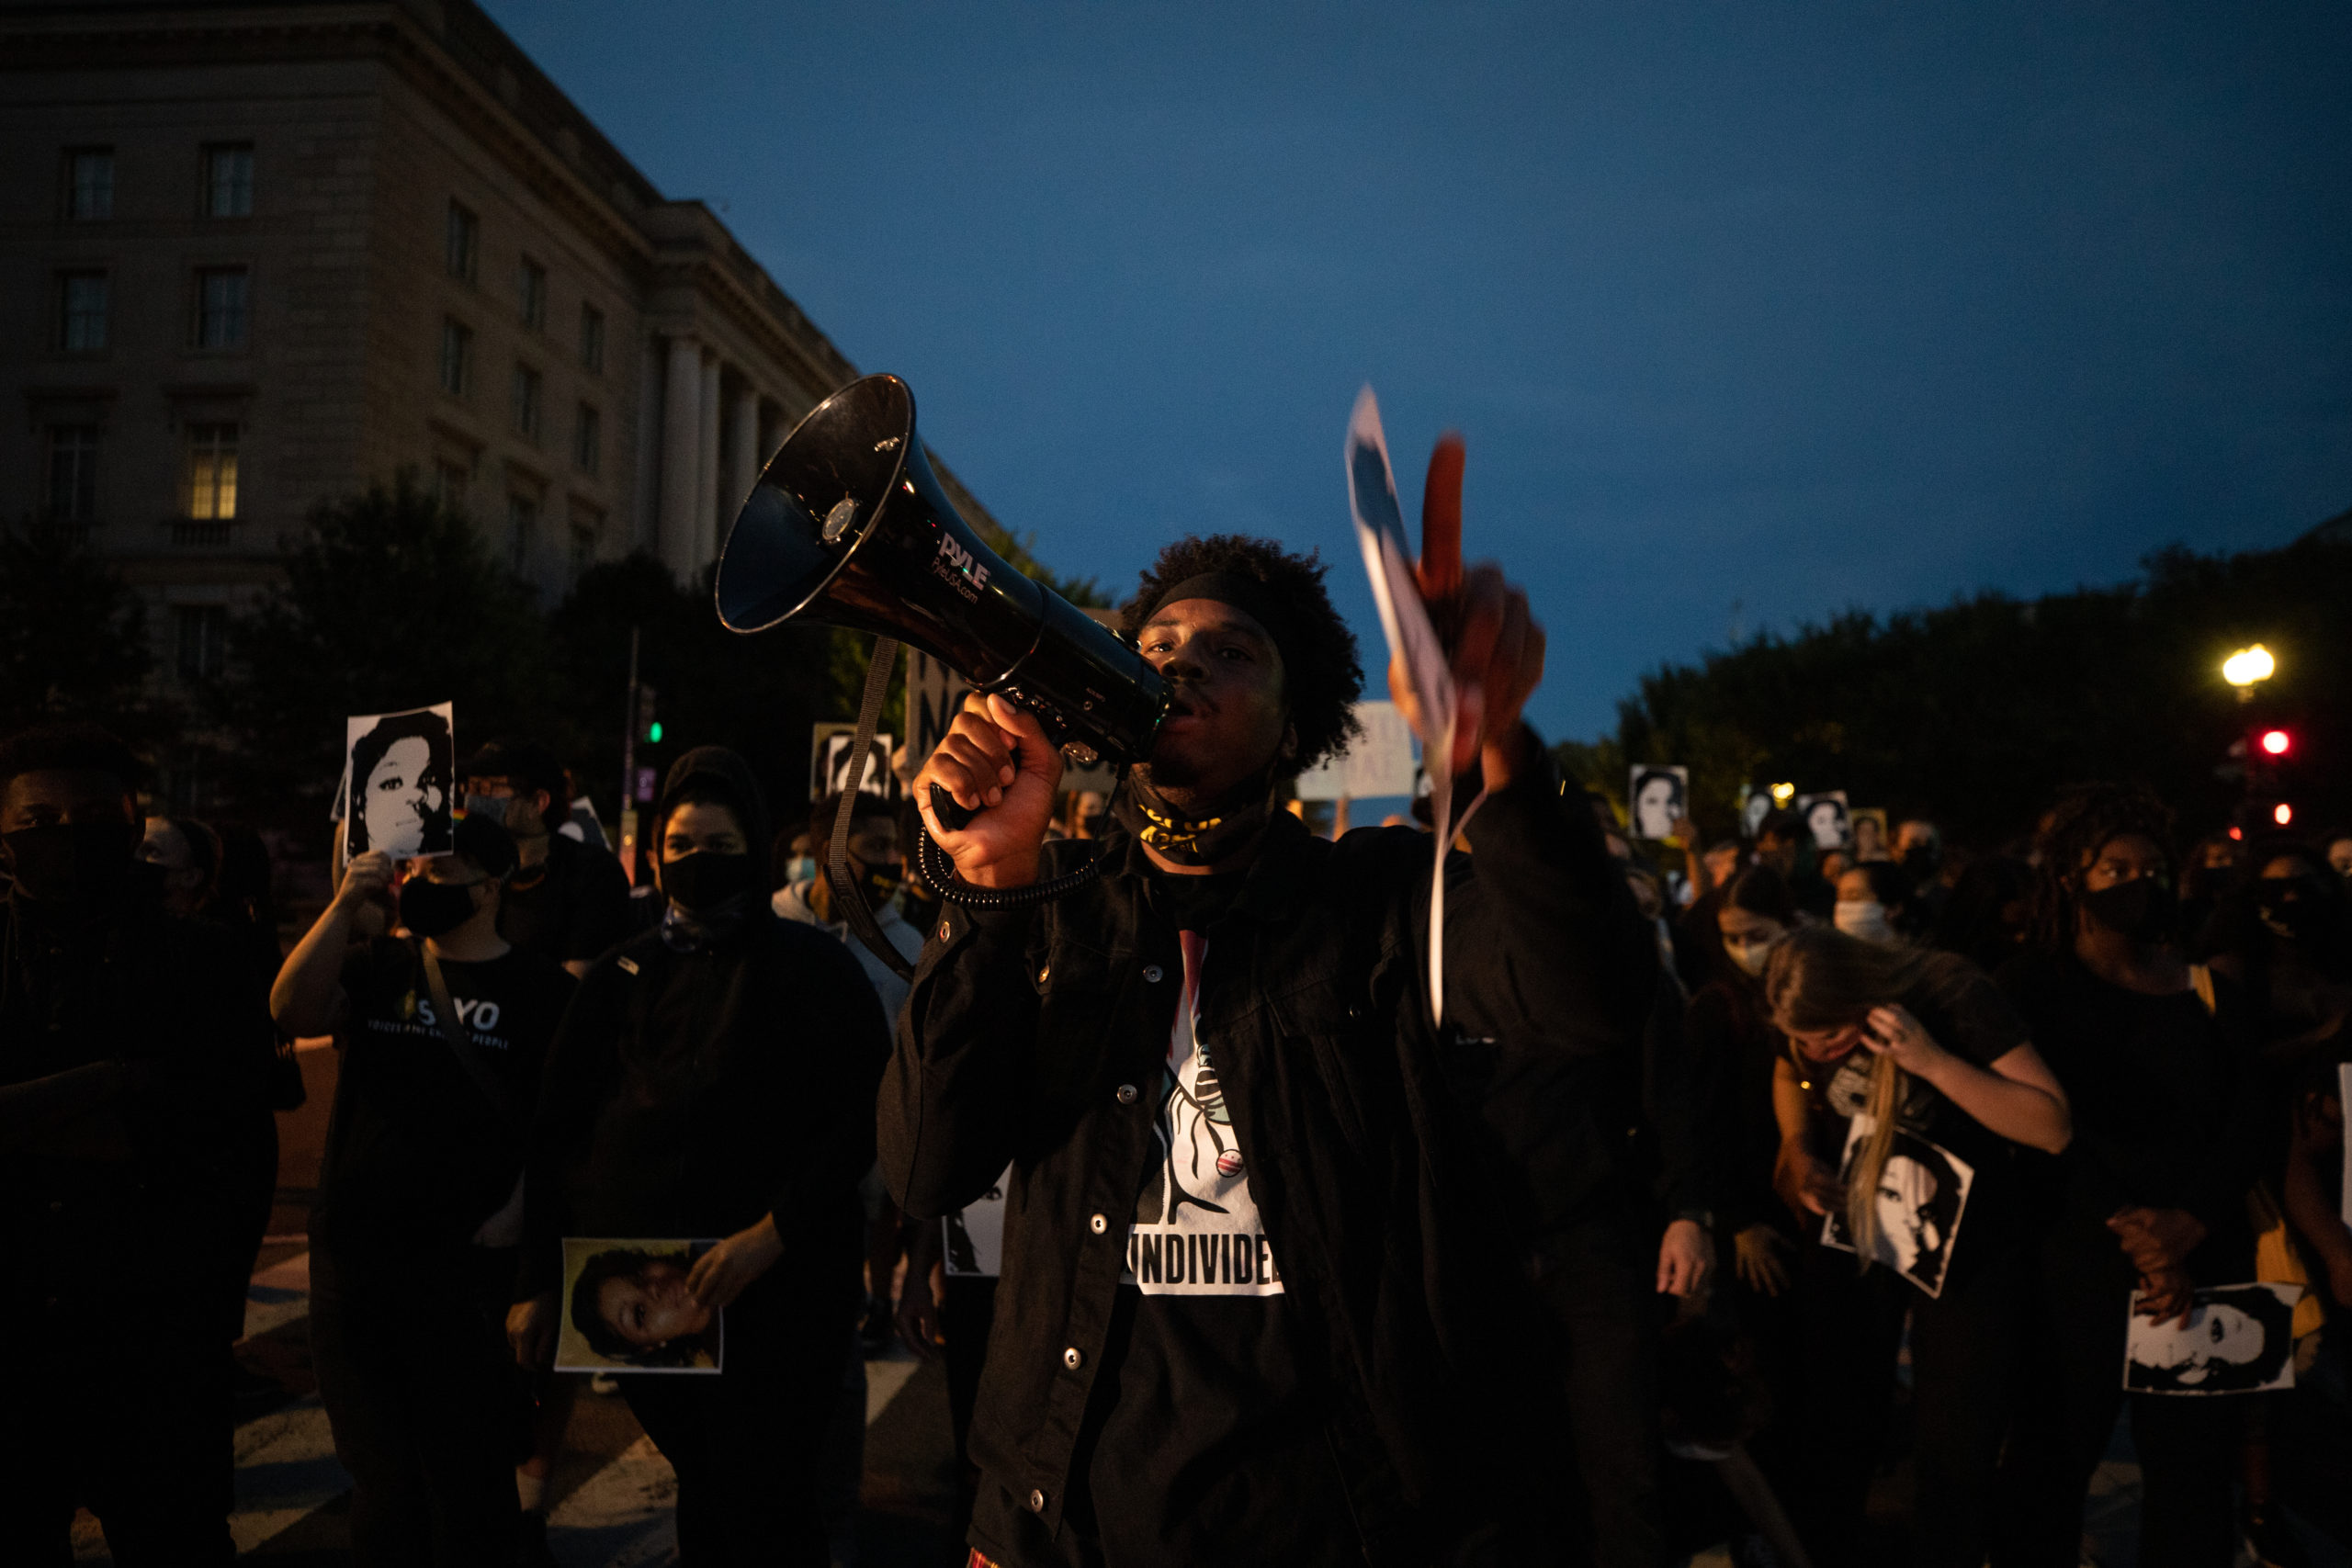 Protesters honored Breonna Taylor as they walked from the Department of Justice to Black Lives Matter Plaza in Washington, D.C. on Sept. 23. (Photo: Kaylee Greenlee / DCNF)